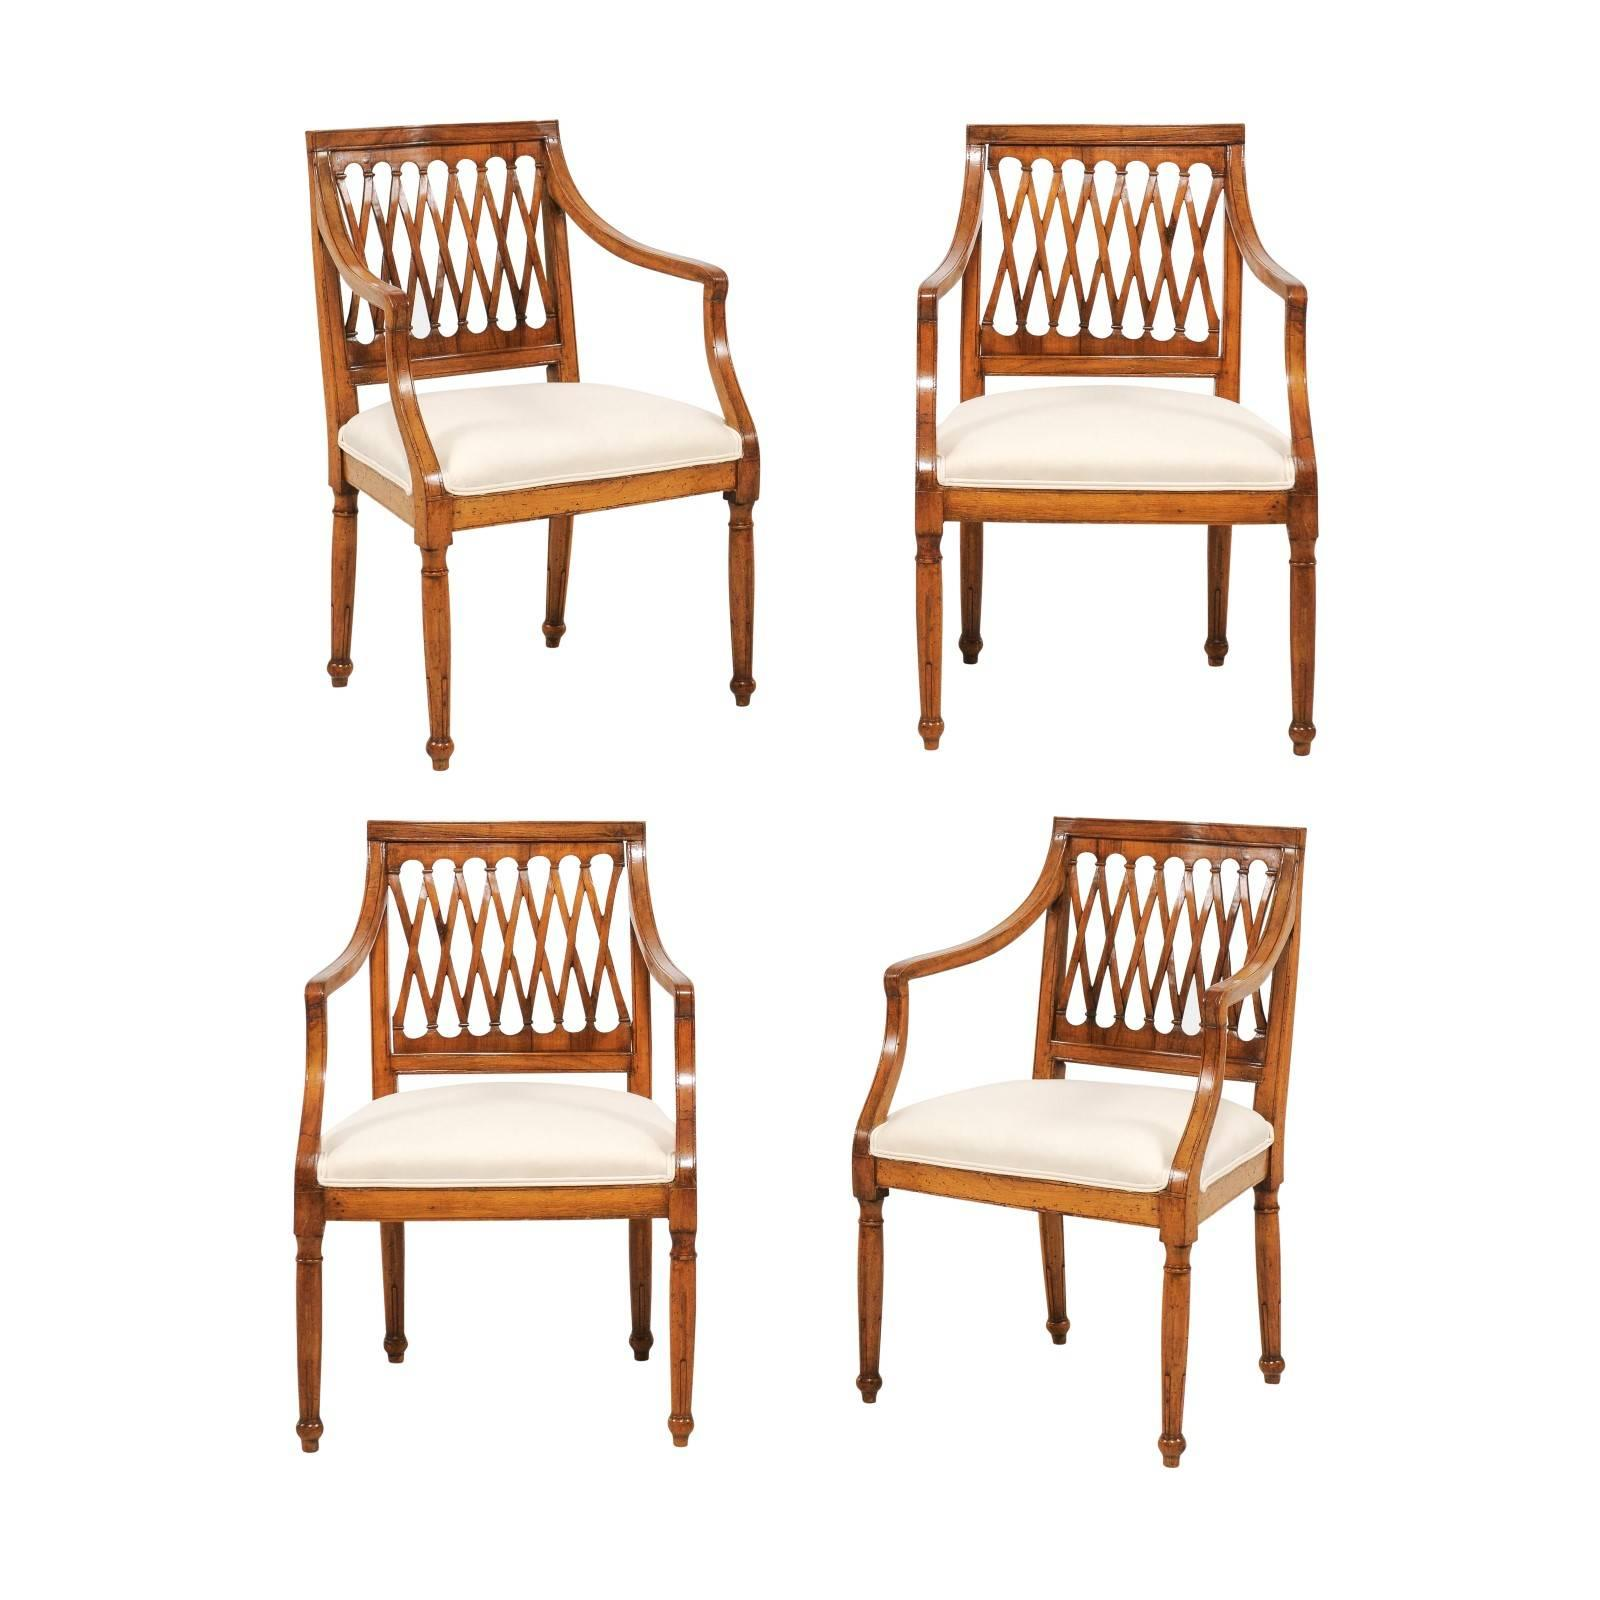 Set of Four Italian Vintage Upholstered Chairs with Latticed Backs, circa 1930